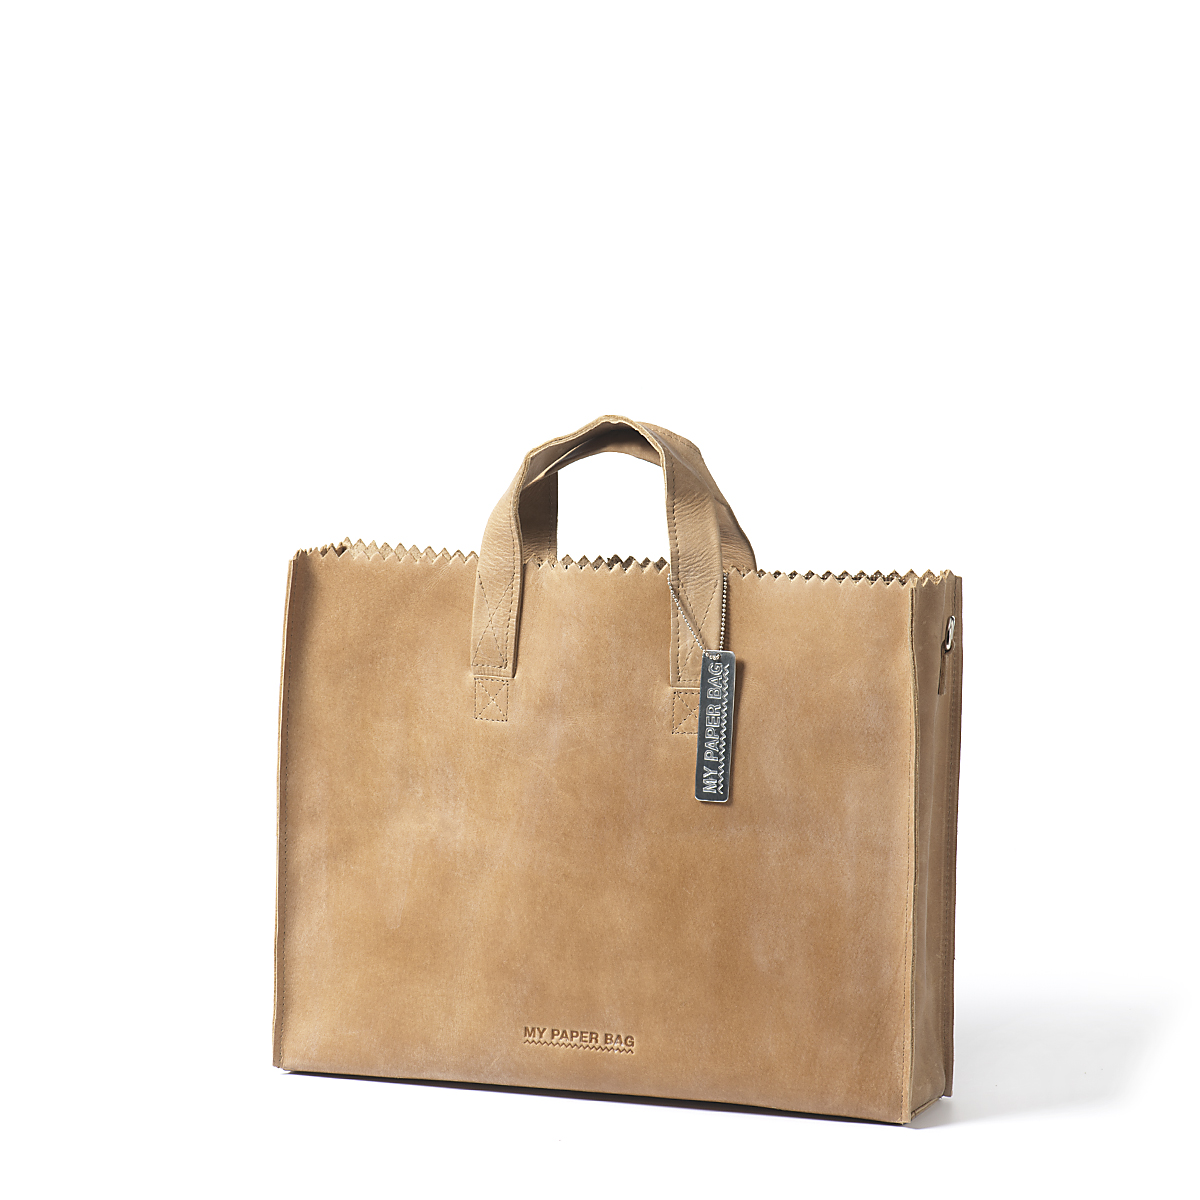 blond My paper bag business bag good for all